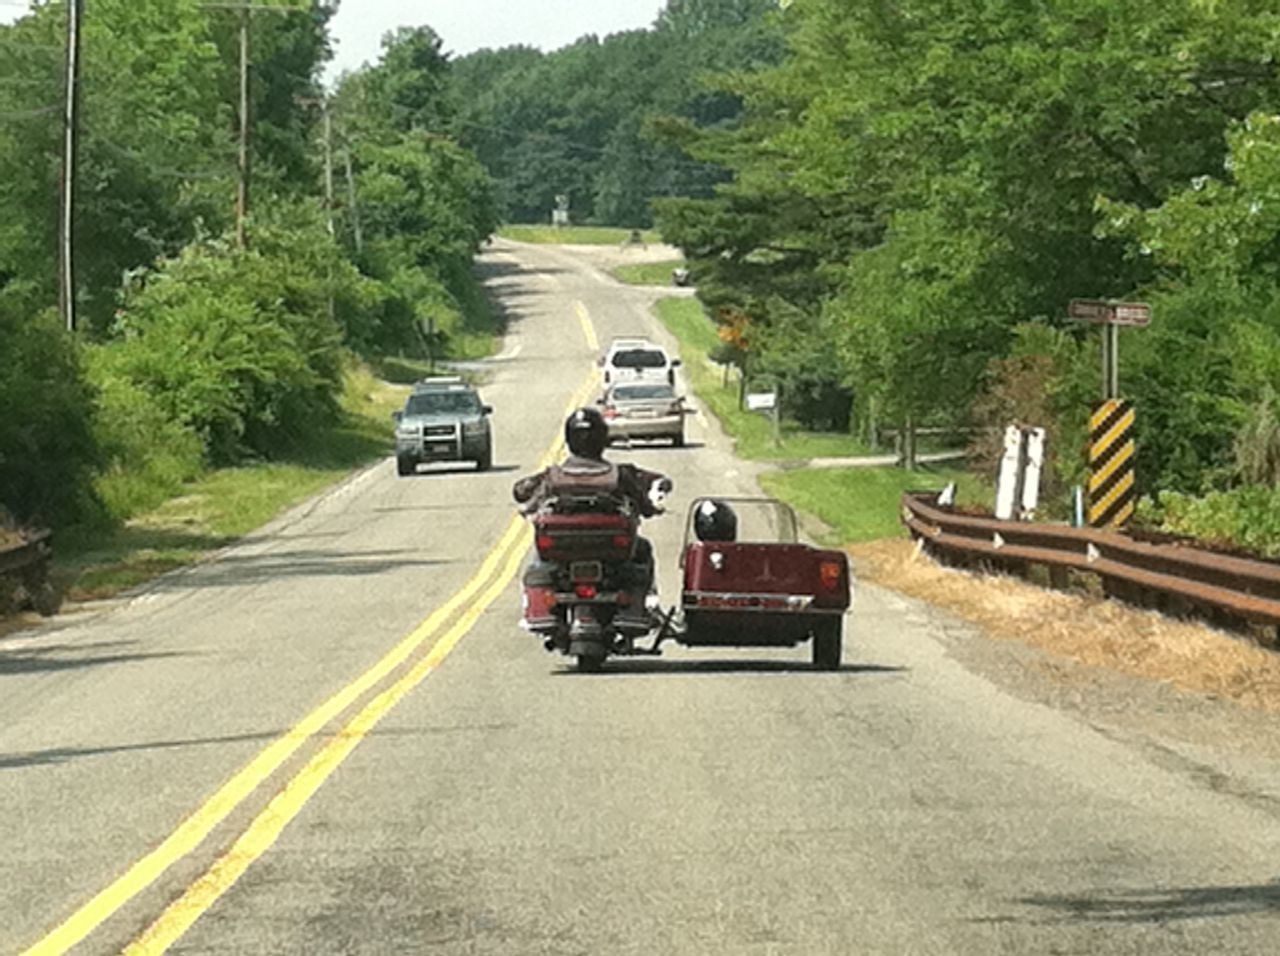 Country Country Road Countryside County Ride Day Enjoy The Ride Enjoying Life Land Vehicle Outdoors Road Side By Side Sidecar Sidecar Motorcycle Transportation Chance Encounters Happy People